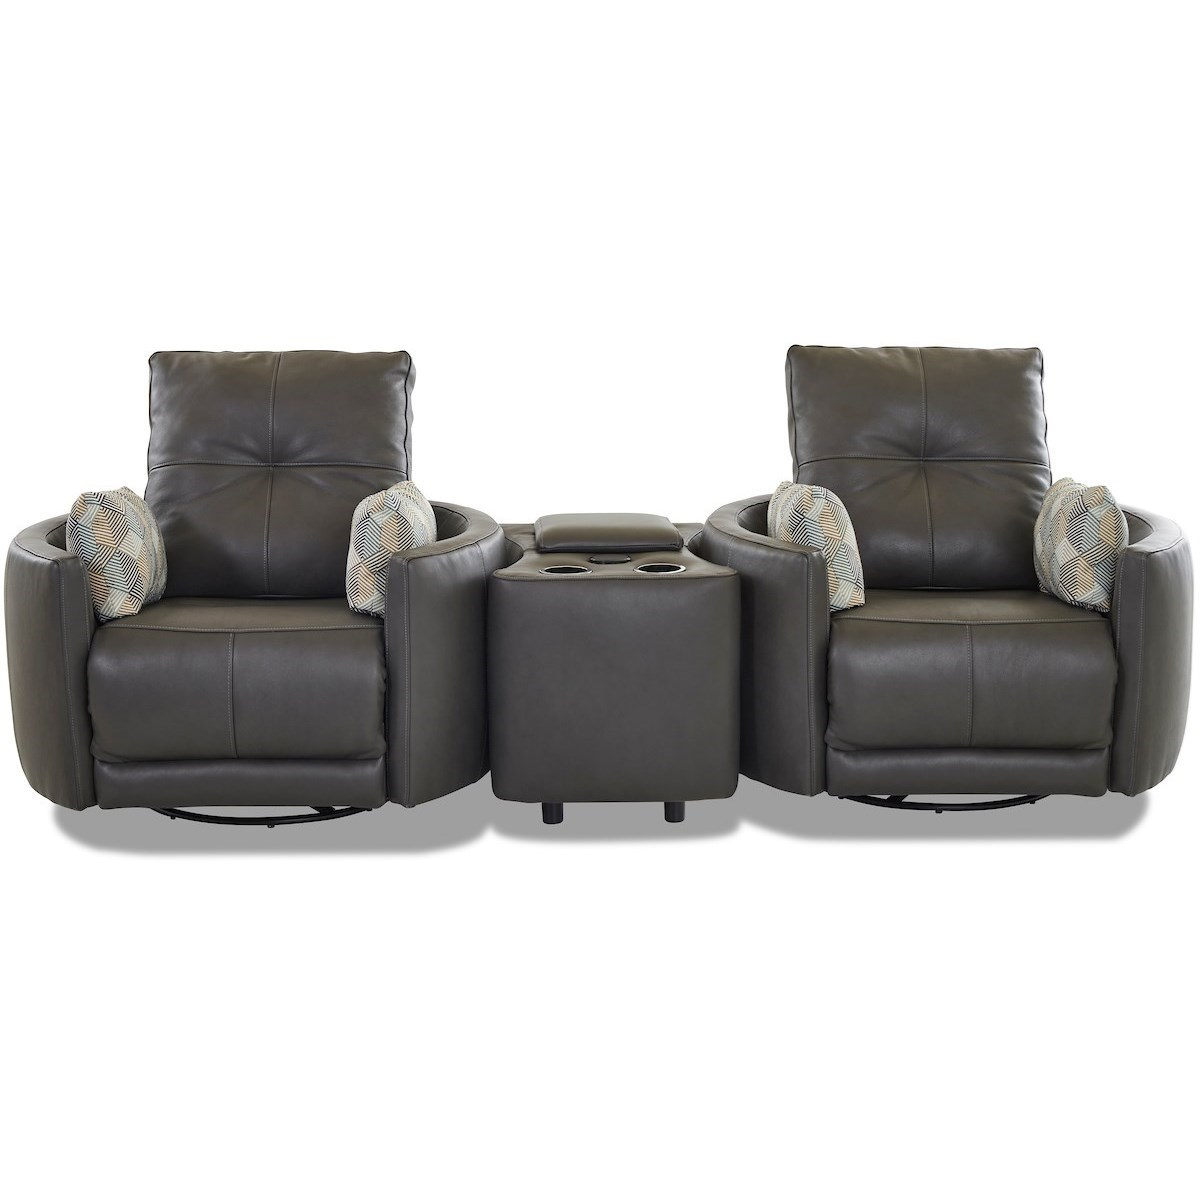 Waterloo 2-Seat Power Reclining Set with Console by Klaussner at Johnny Janosik